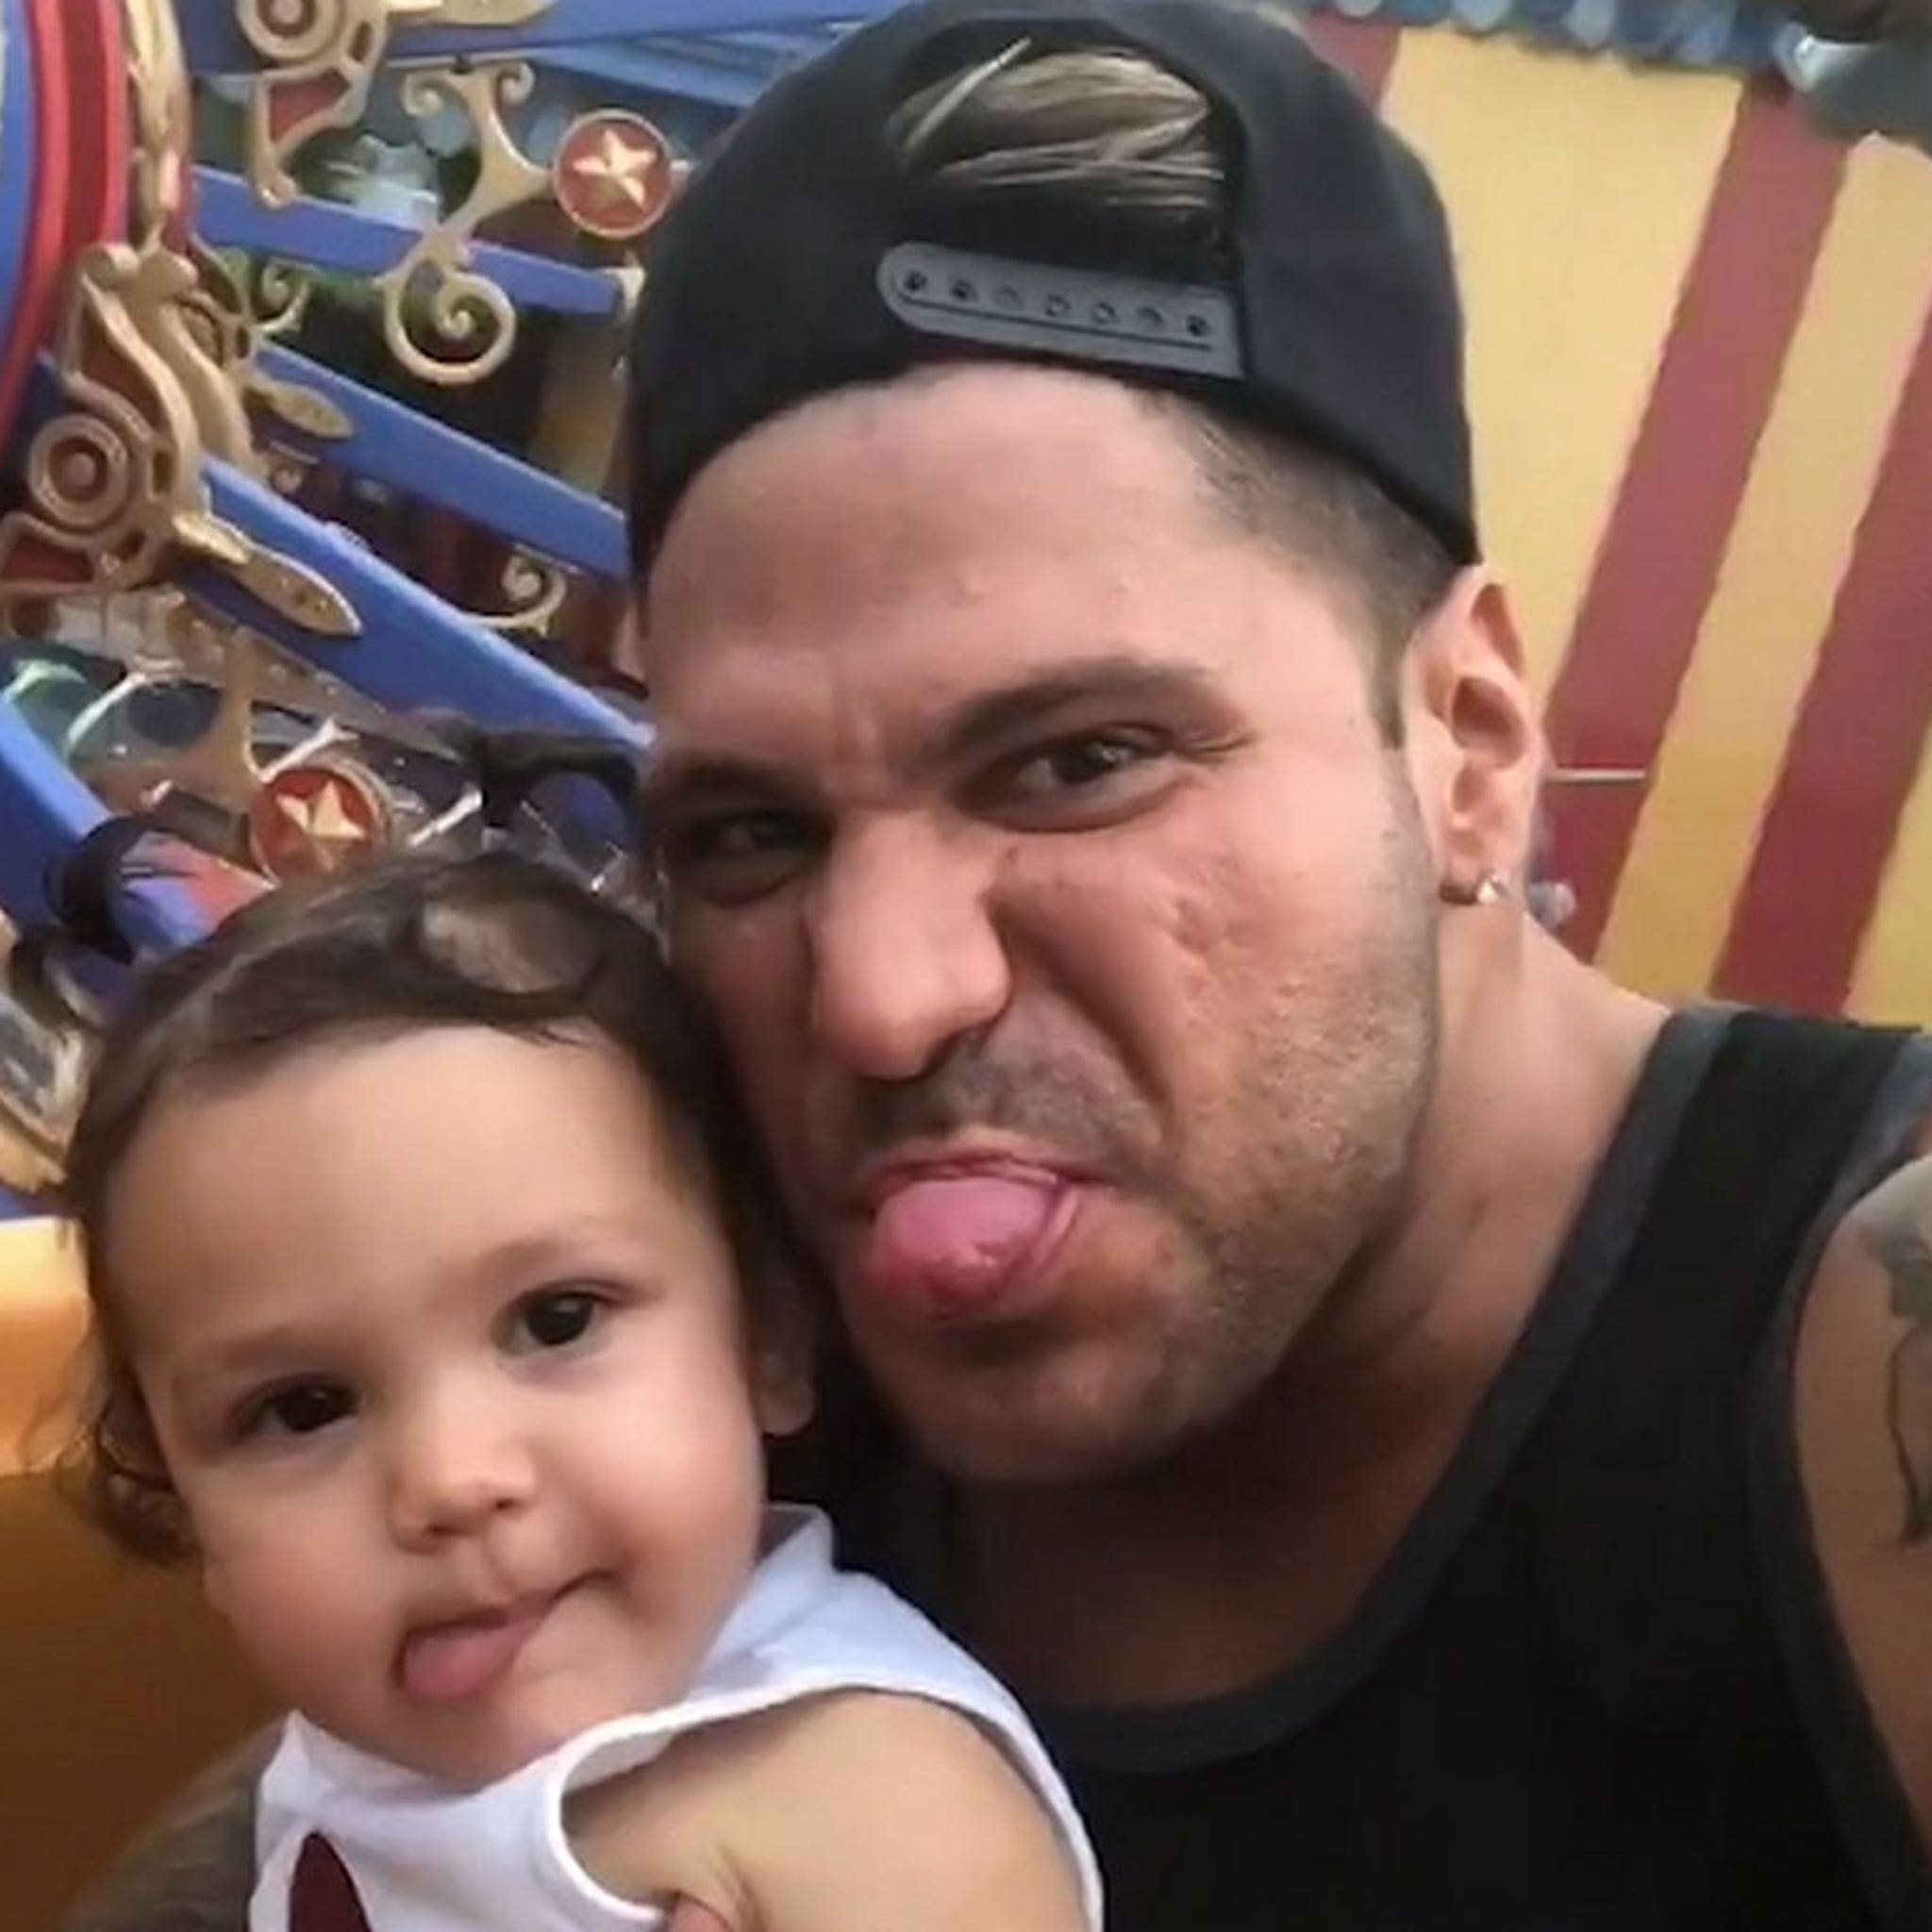 Ronnie Ortiz-Magro Reunites with Daughter, Protective Order Expired